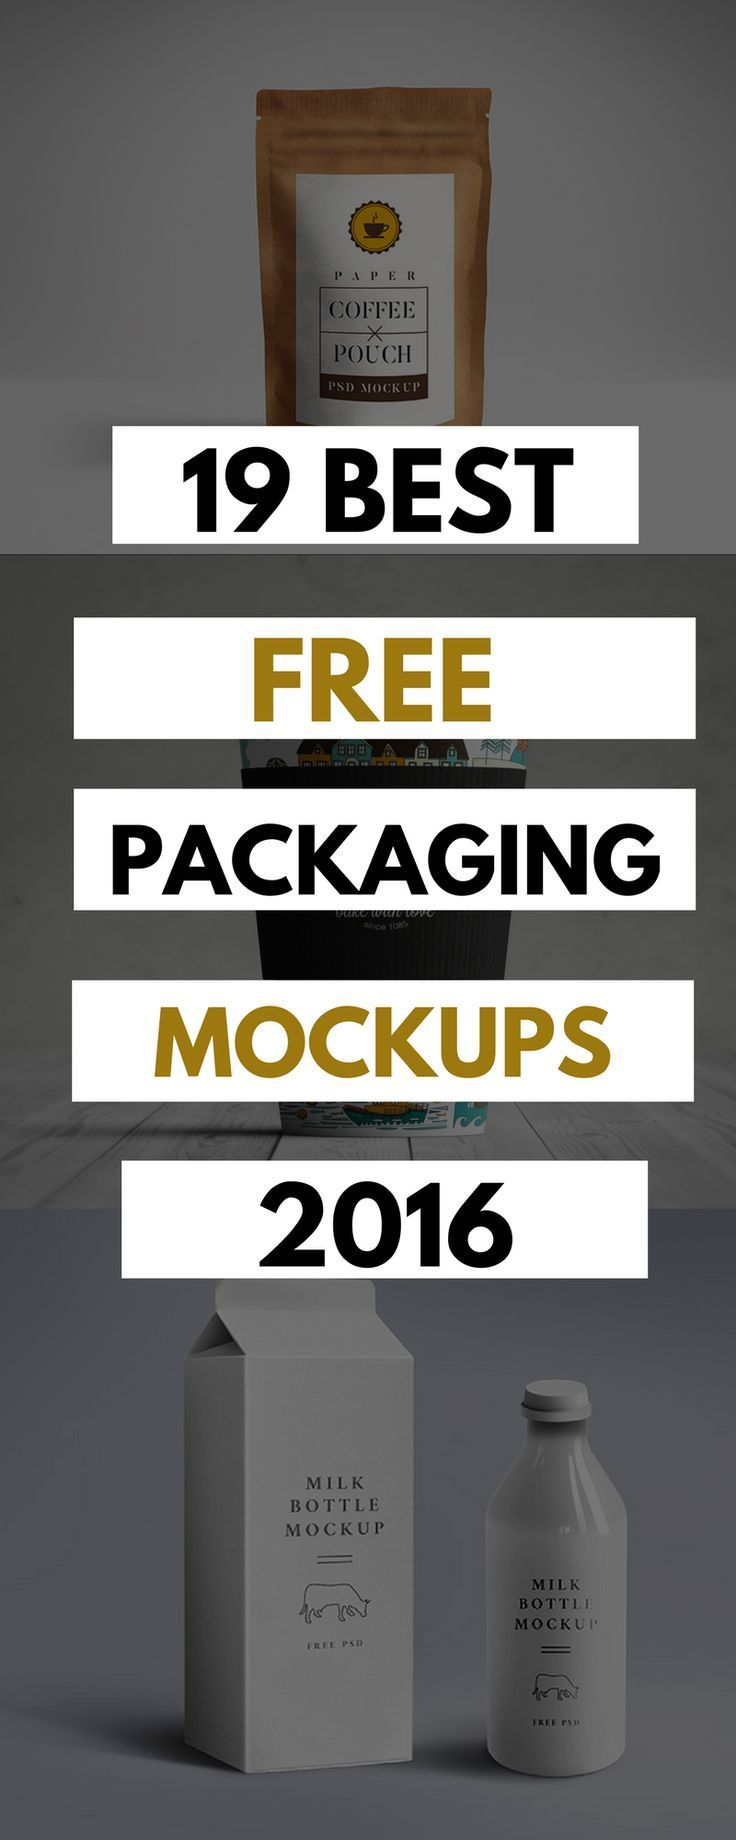 Download 19 of the best free packaging mockups of 2016. Easily editable and complete with shadows, layers, highlights and smart objects.